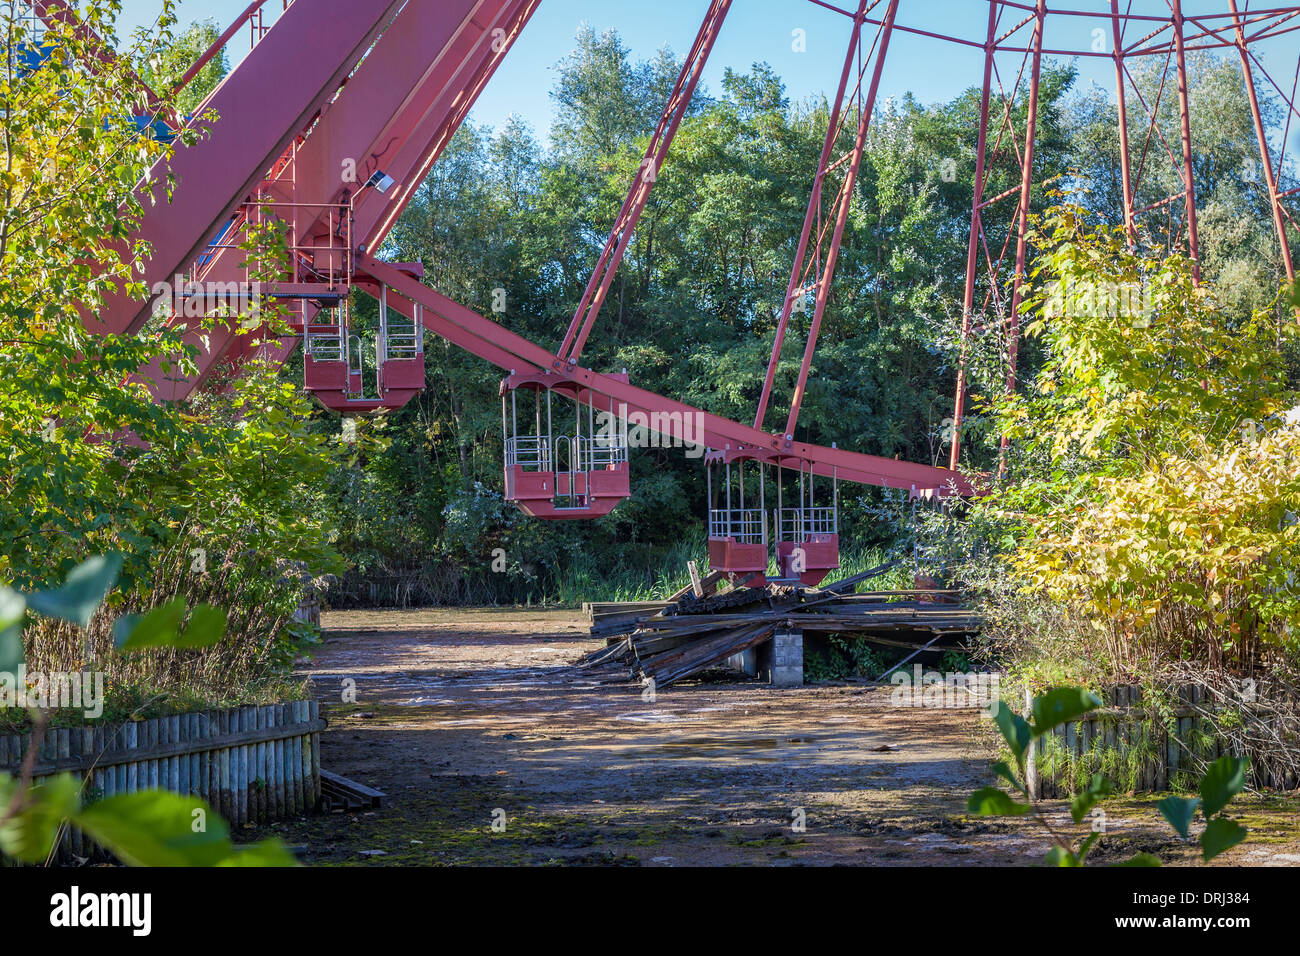 Old, disused, derelict ferris wheel above slimy, murky pond at the abandoned amusement park Plånterwald, Berlin - Stock Image